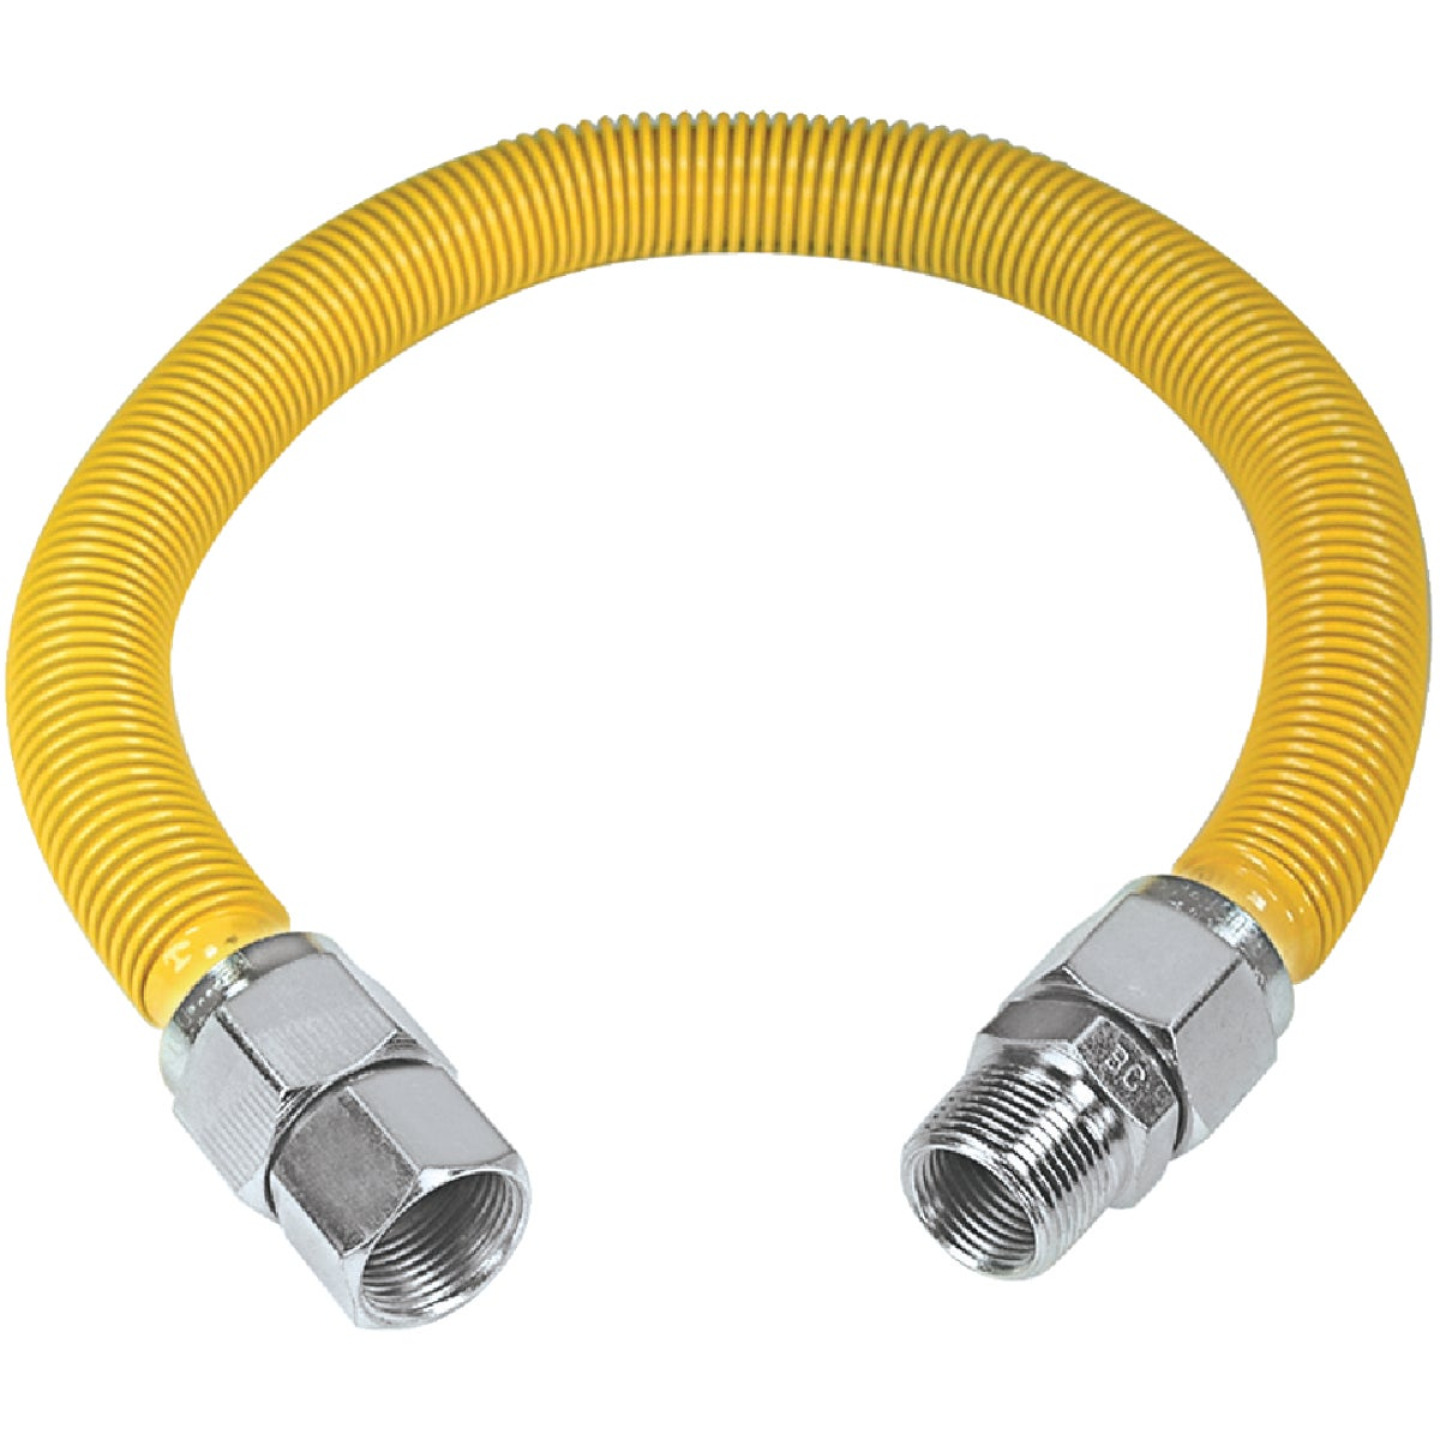 Dormont 1 In. OD x 36 In. Coated Stainless Steel Gas Connector, 3/4 In. FIP x 3/4 In. MIP (Tapped 1/2 In. FIP) Image 1